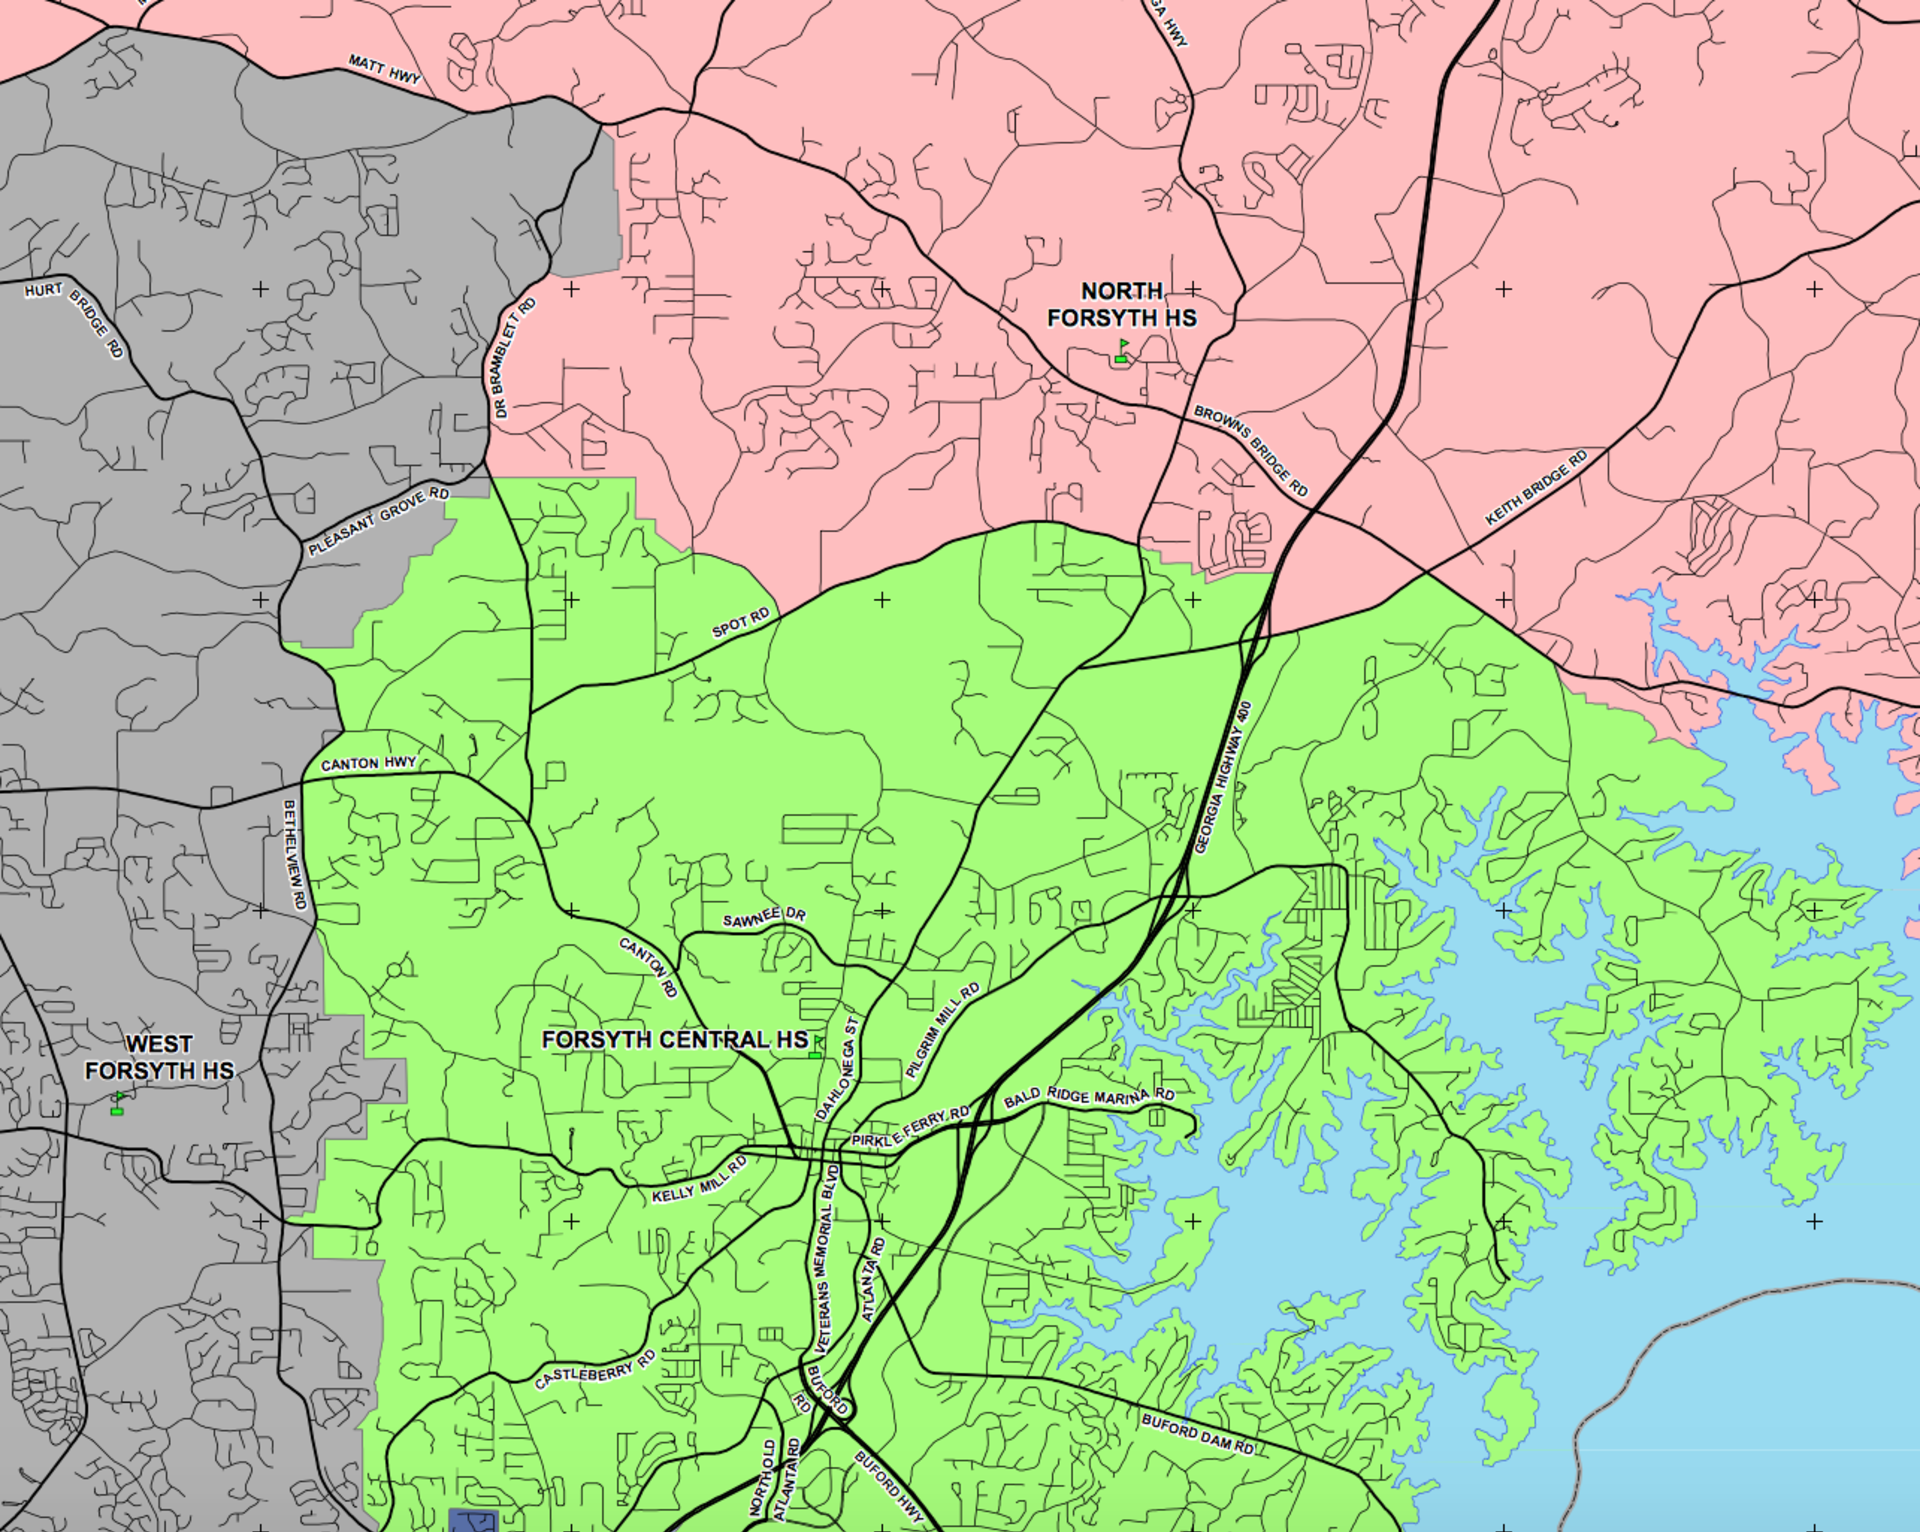 Forsyth County Redistricting Information – What You Need To Know